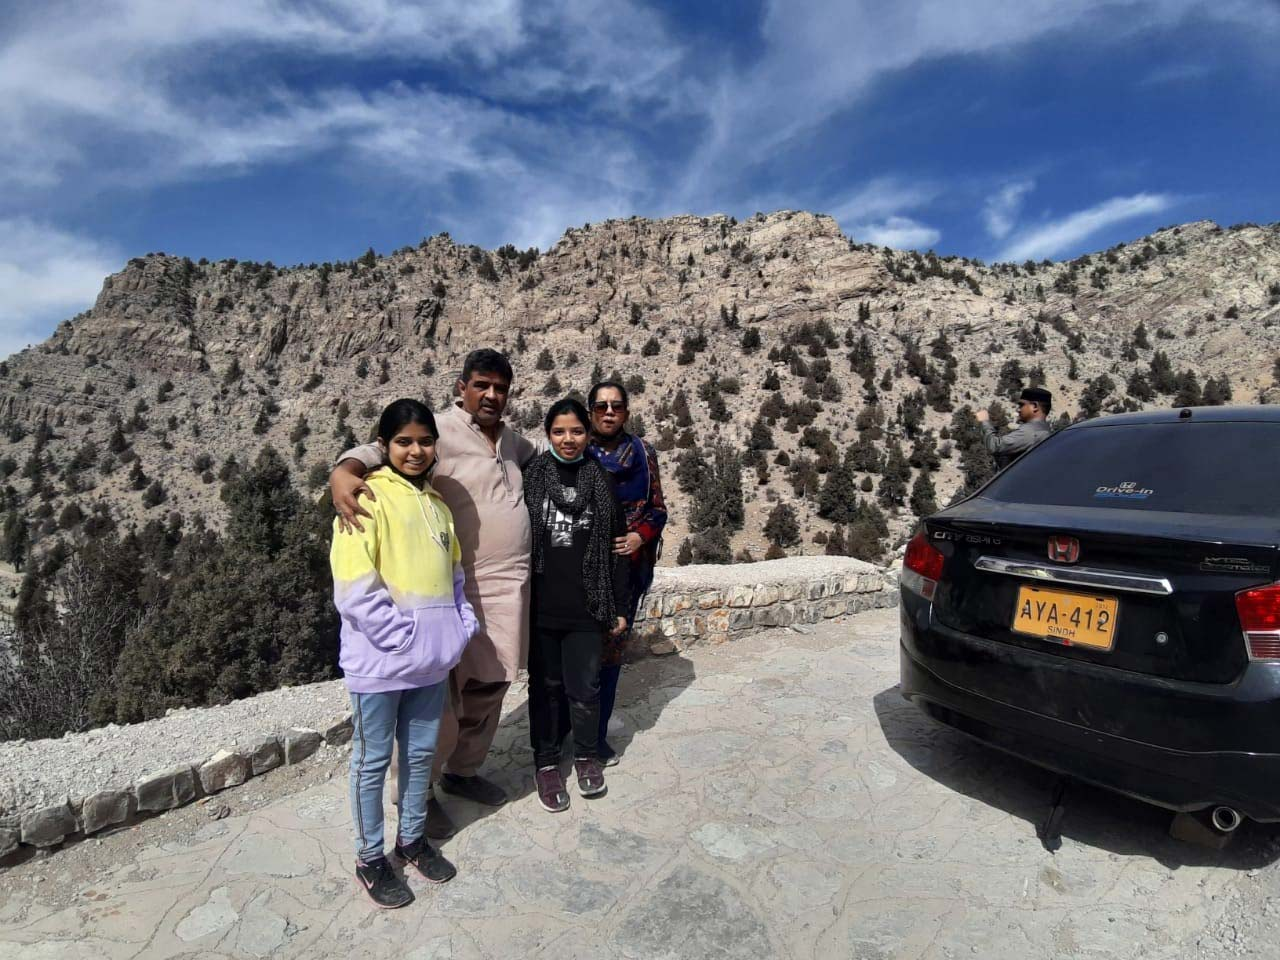 Imran and Family in front of a mountain in Quetta where the clouds are about to start raining